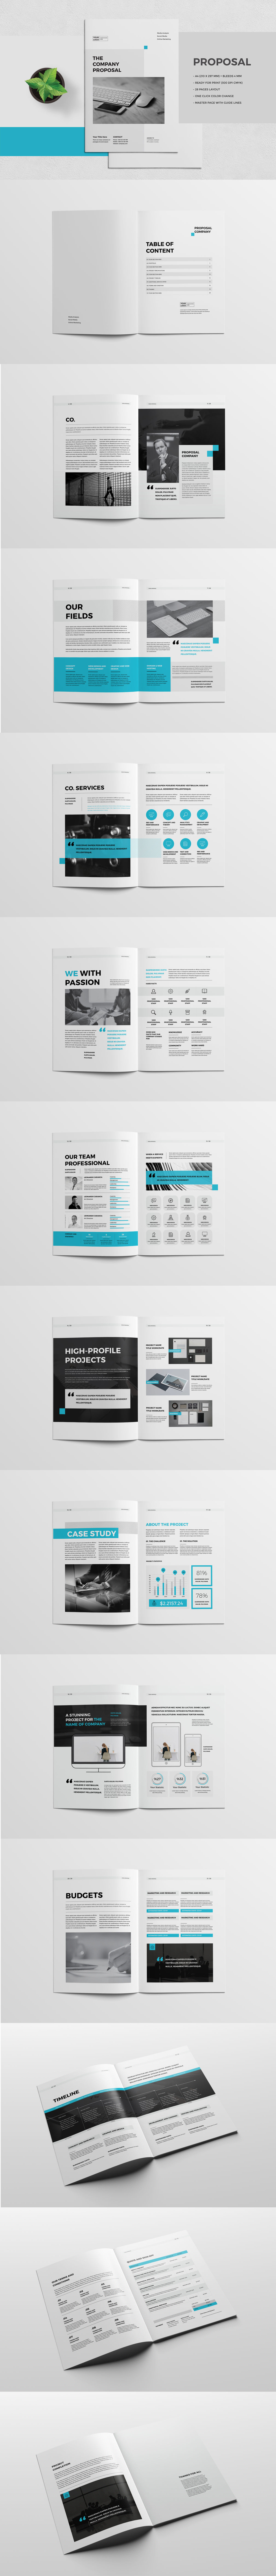 Clean and Modern 28 Page Proposal Template InDesign INDD | Proposal ...